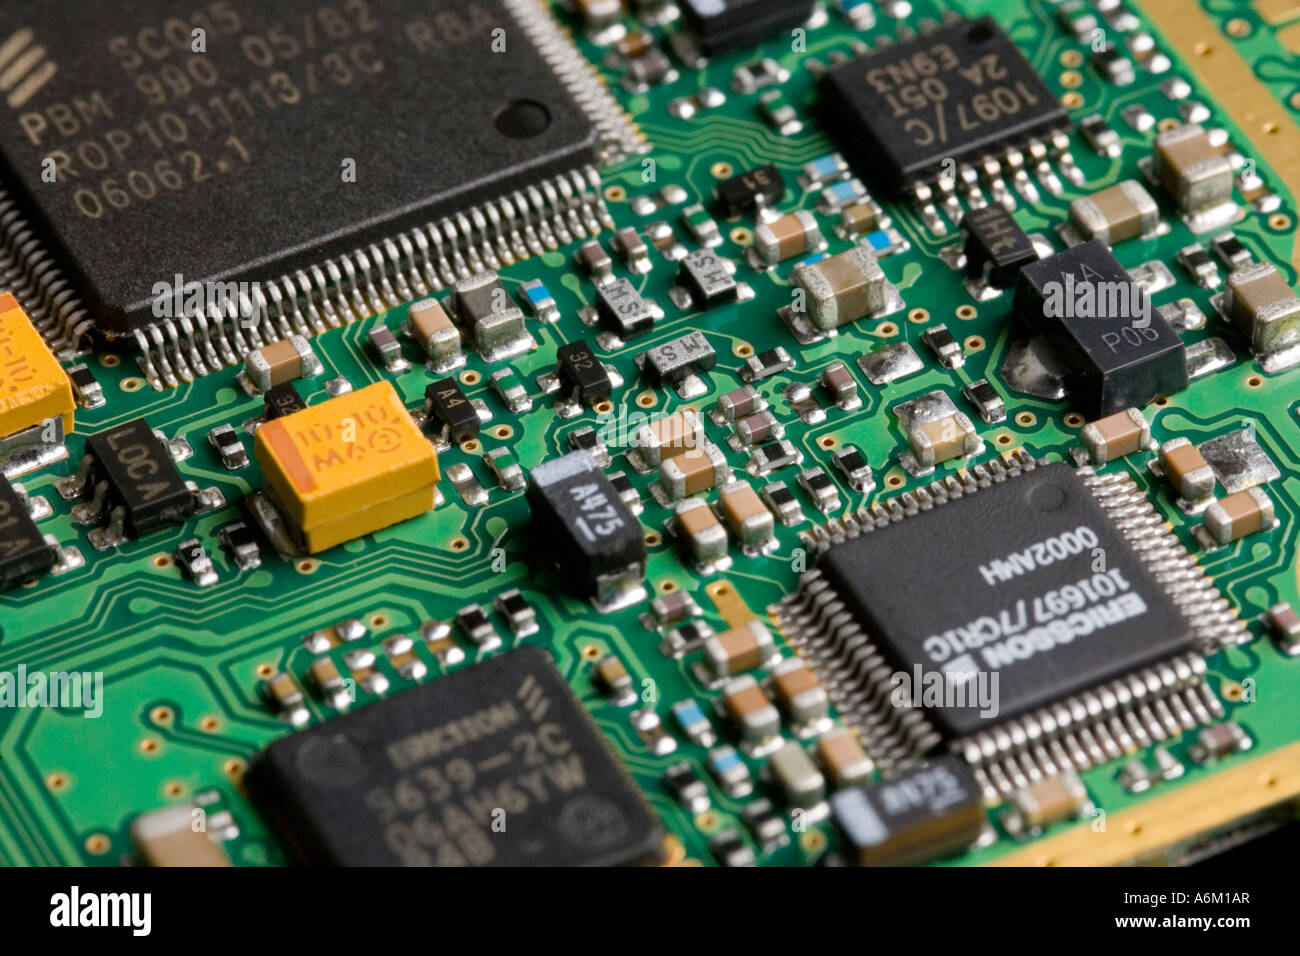 Printed Circuit Boards ~ Printed circuit board showing surface mount components